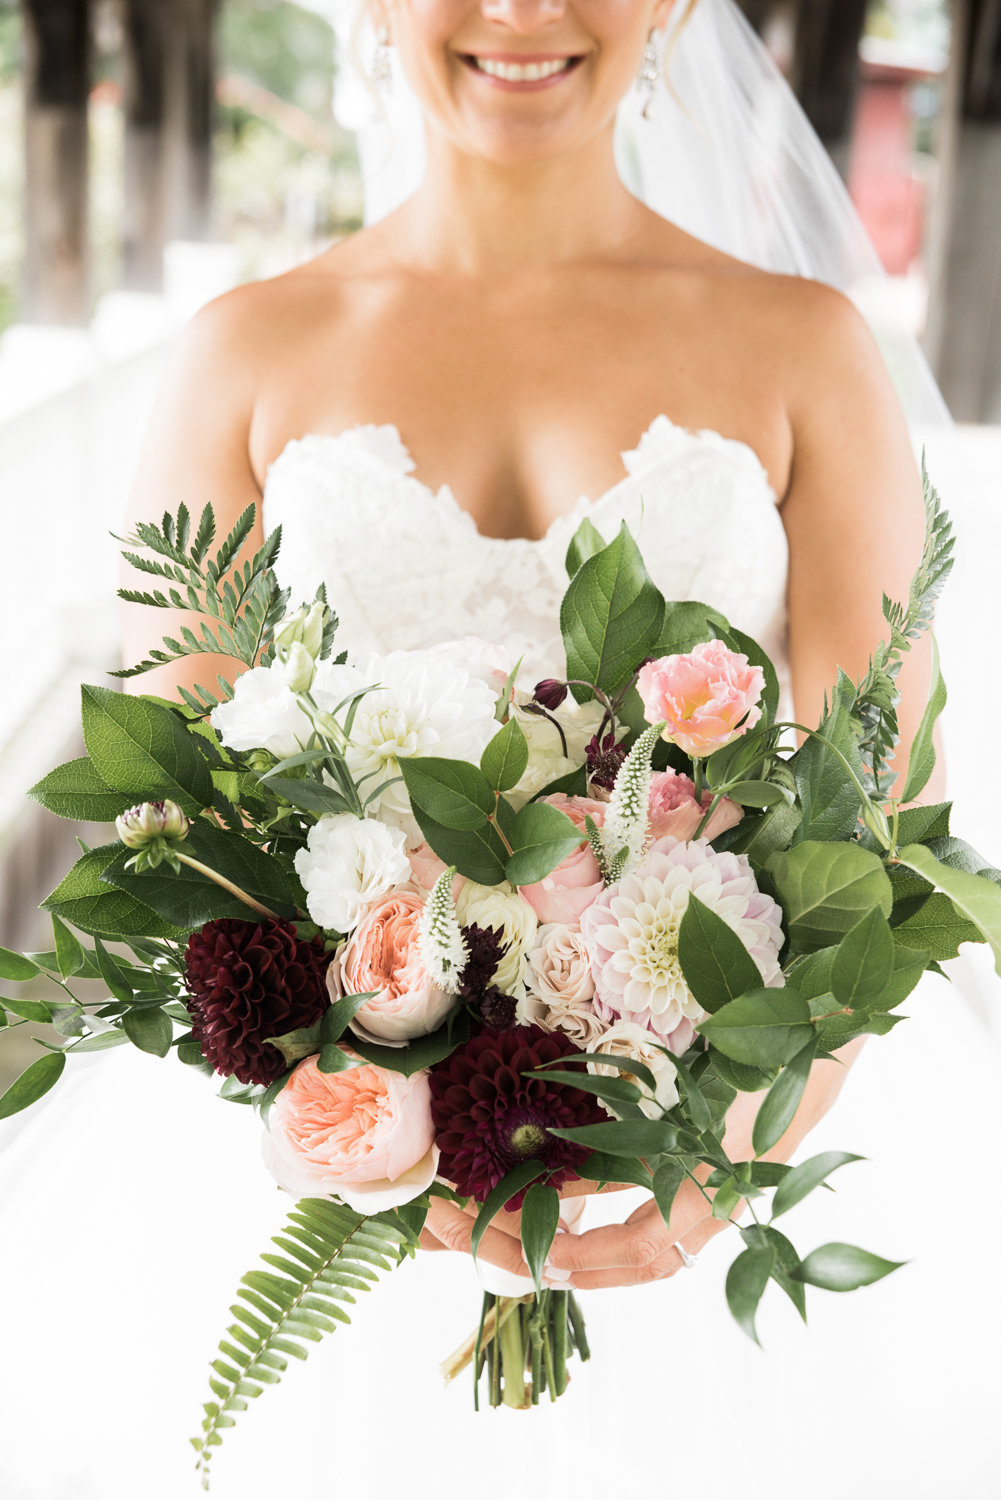 Beautiful, full bridal bouquet with greenery, pinks, and burgundy